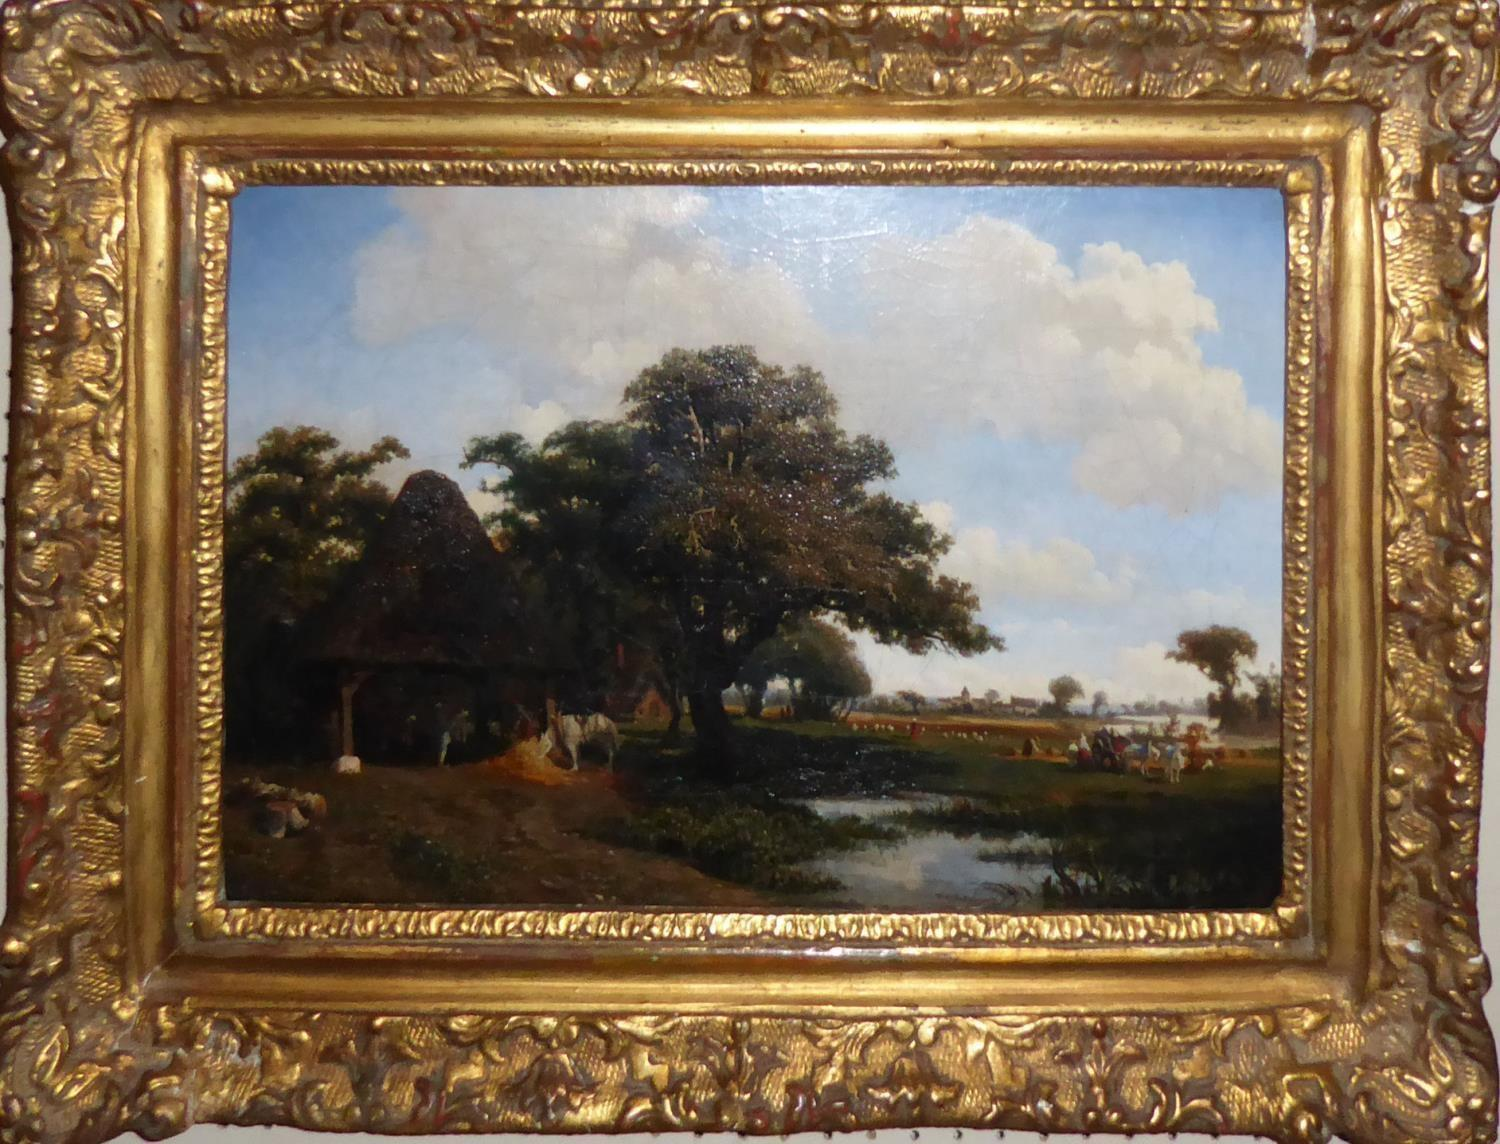 CHARLES THÉODORE-FRÈRE, 1814 - 1888, AN EARLY 19TH CENTURY OIL ON CANVAS Riverside landscape, with - Image 2 of 4